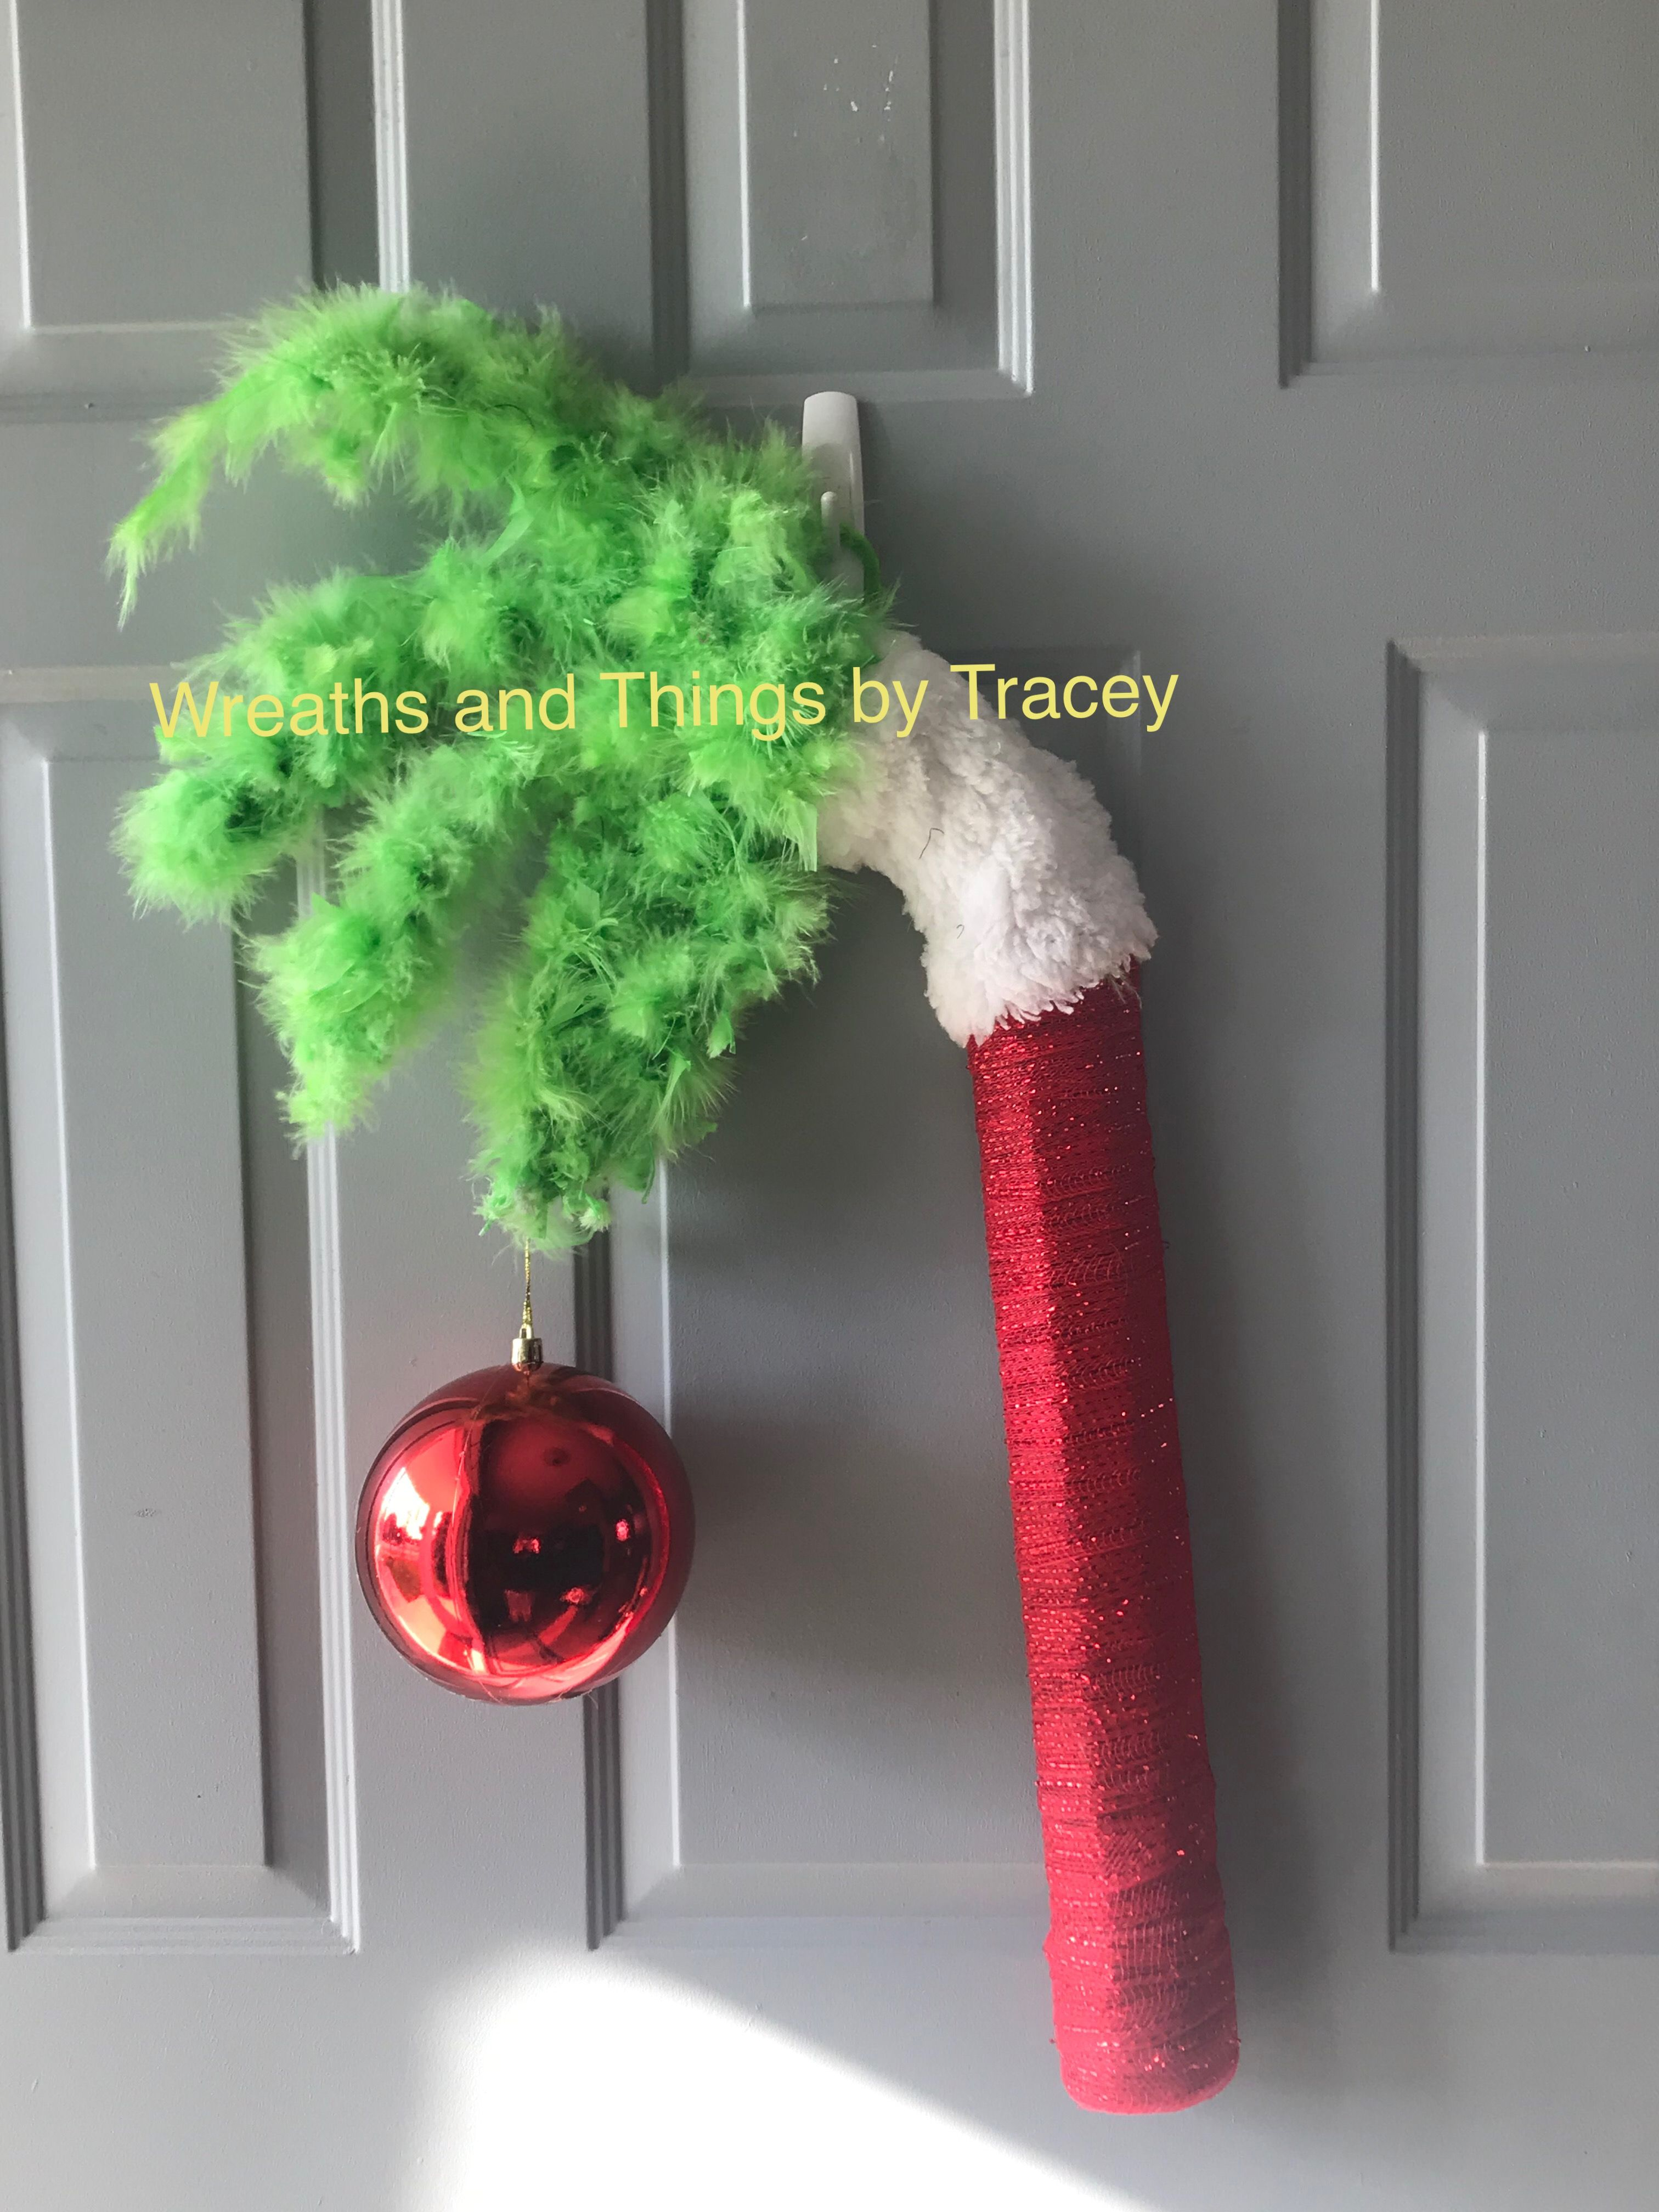 Grinch Hand 2018 Wreaths And Things By Tracey Grinch Christmas Christmas Decorations Grinch Wreath